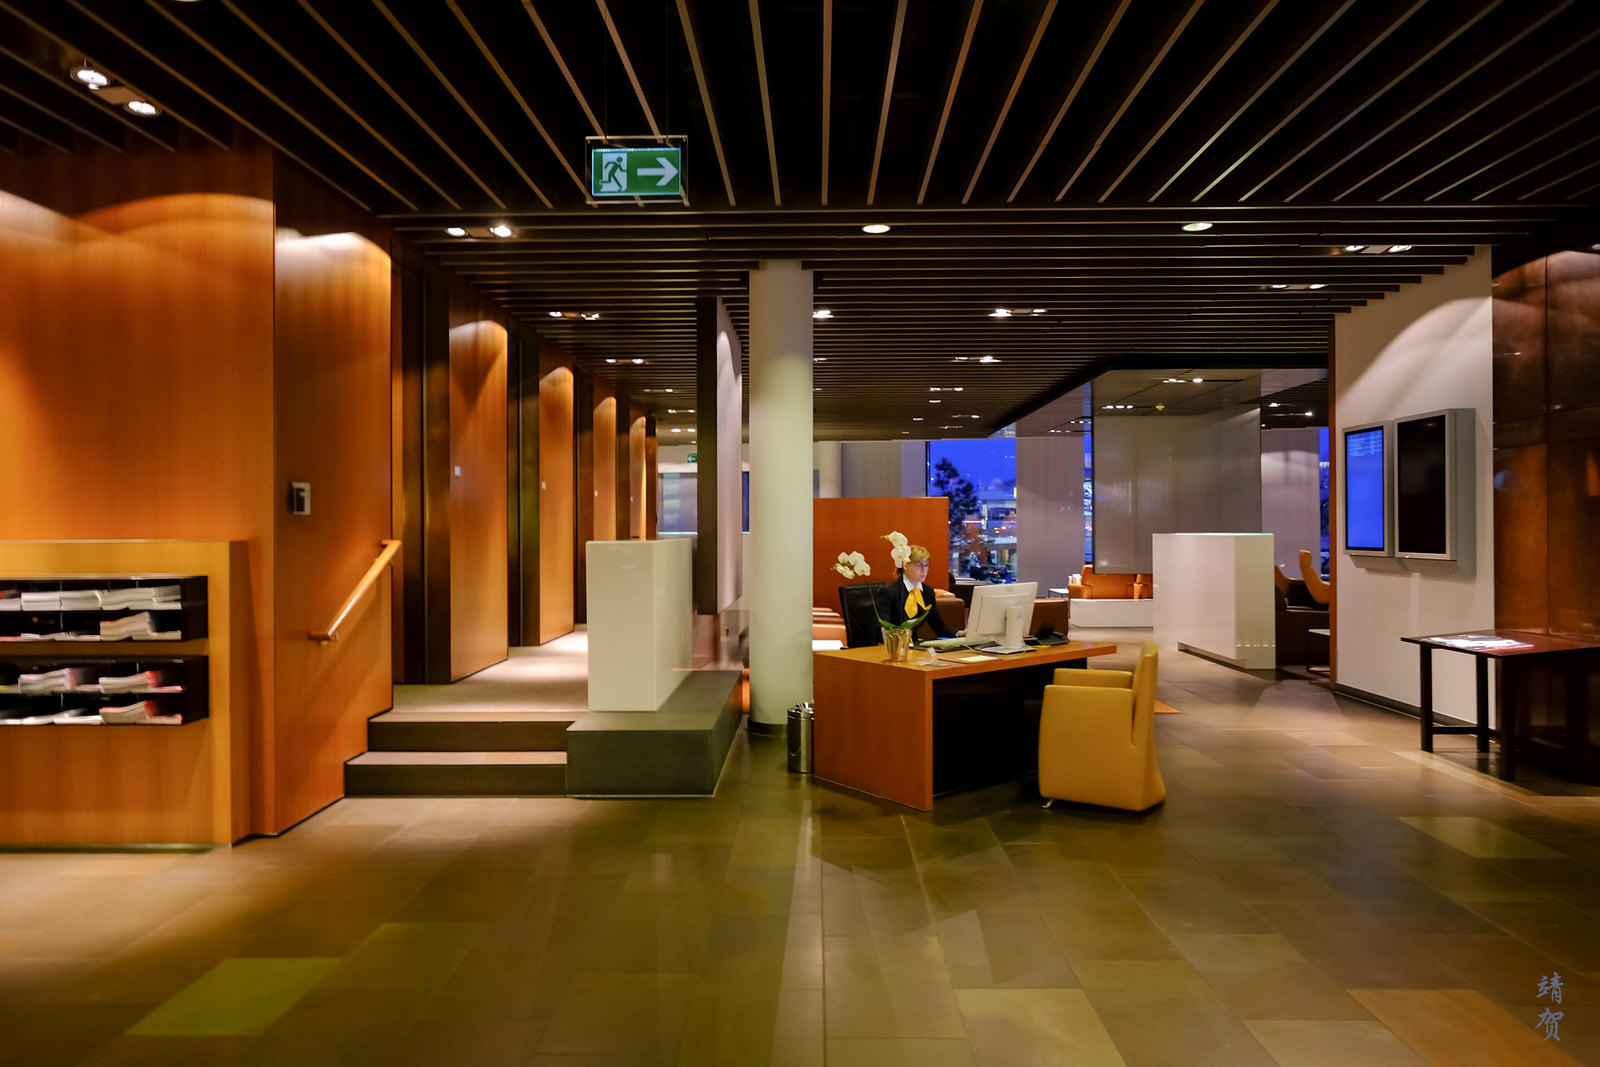 Central foyer of the lounge